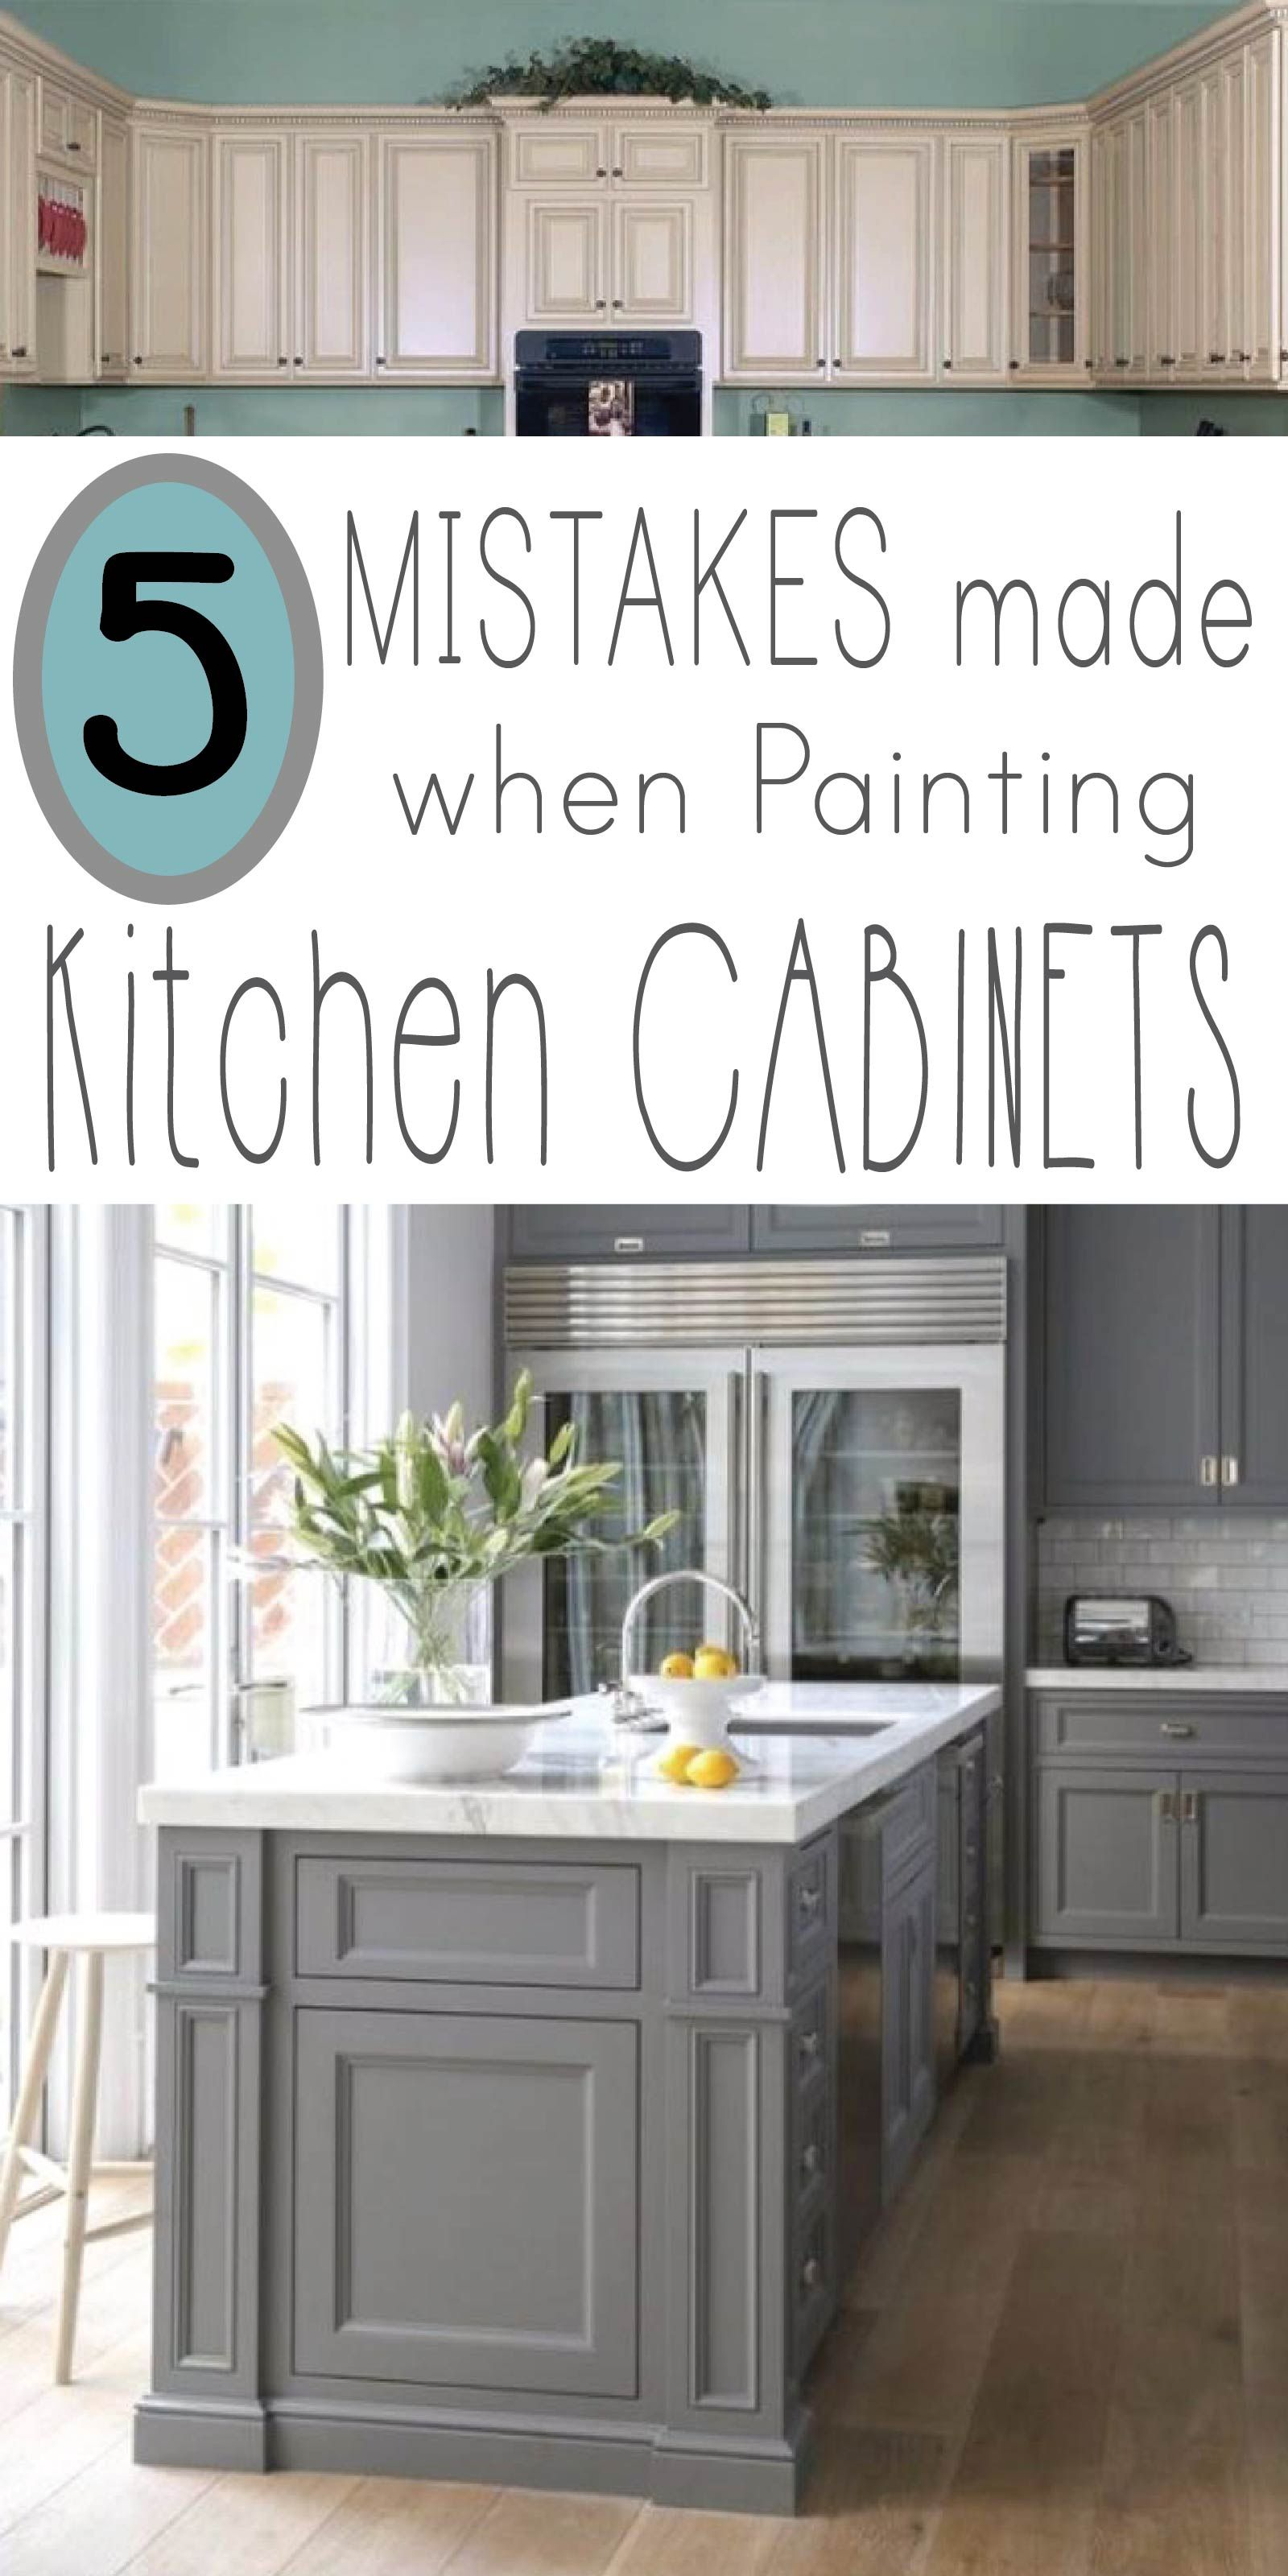 5 Mistakes People Make When Painting Kitchen Cabinets House